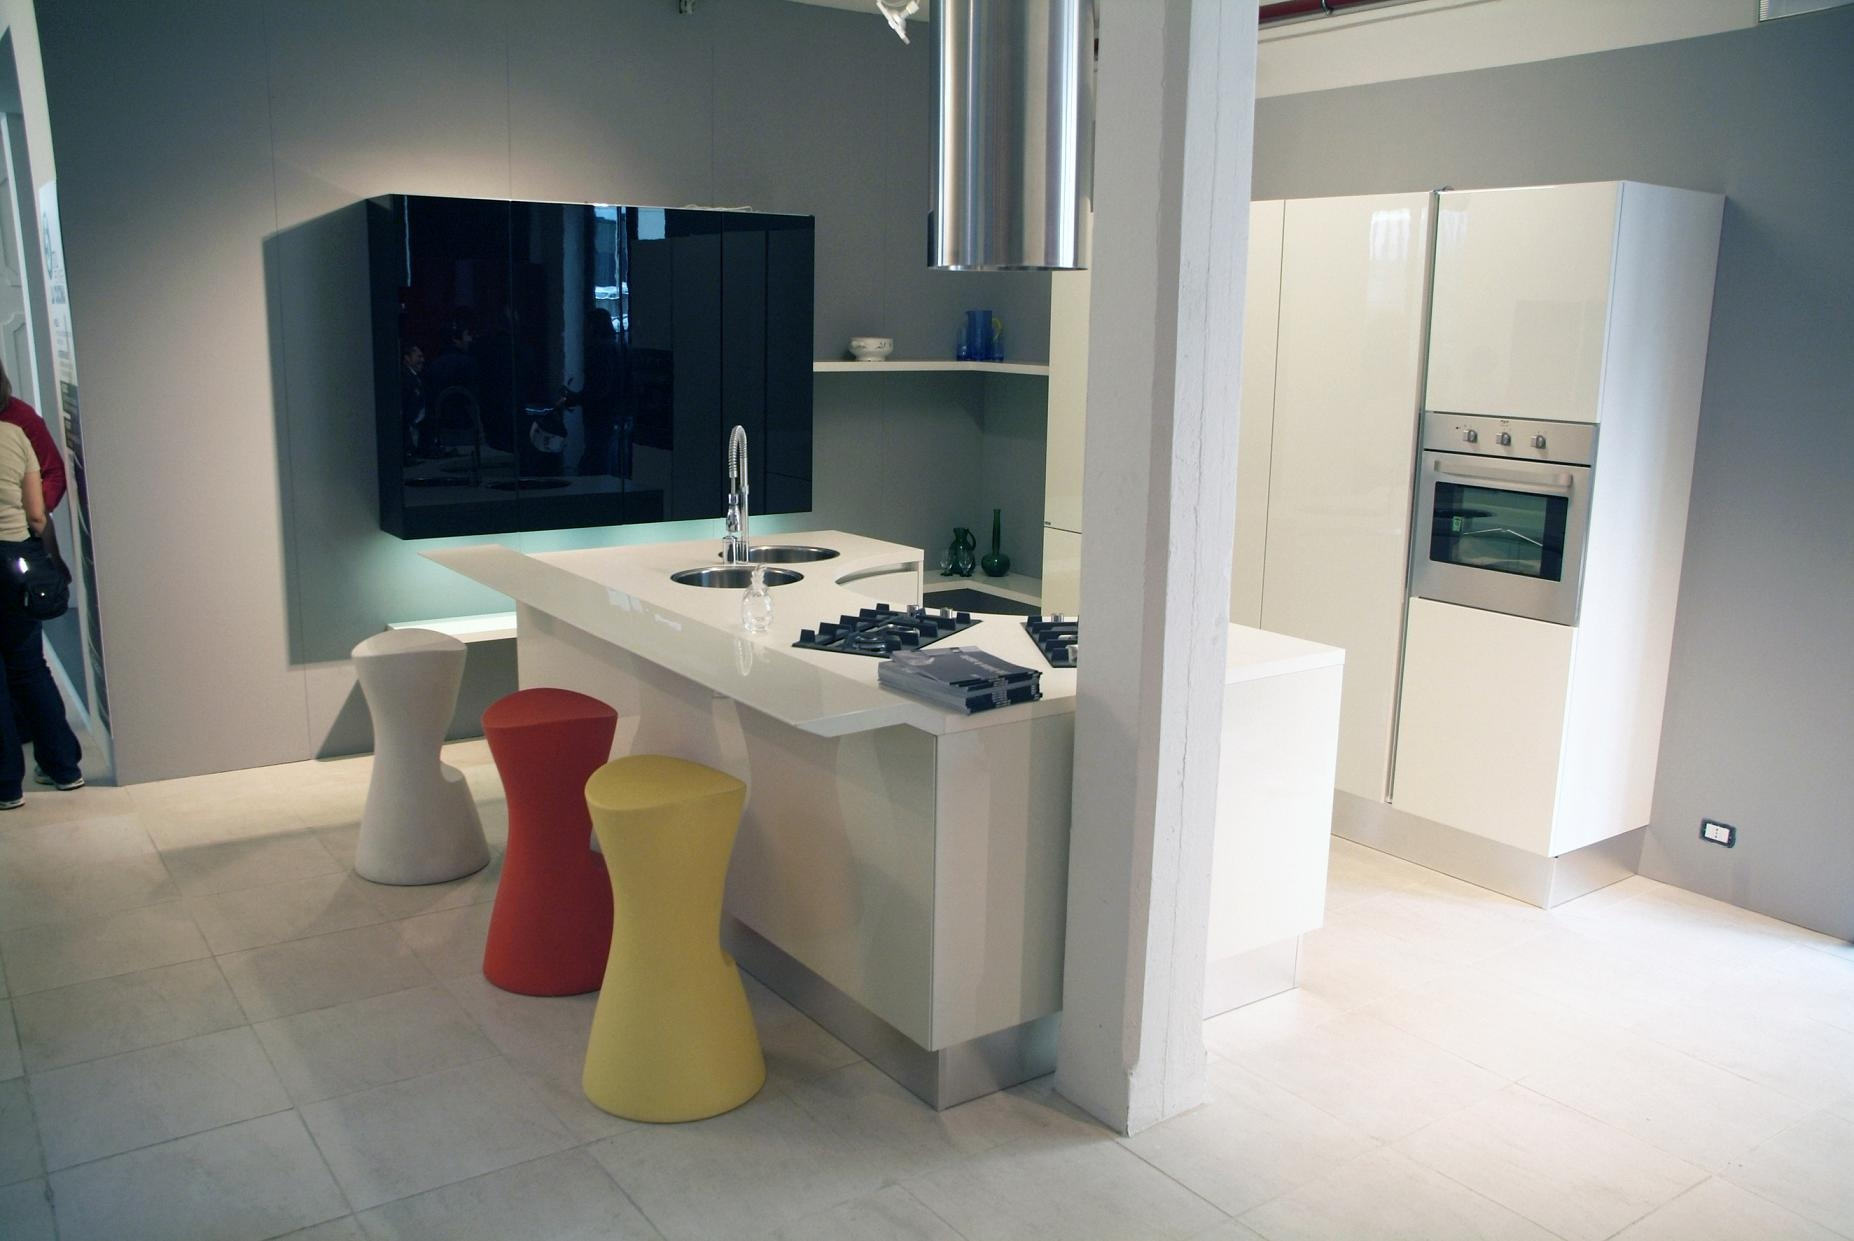 Stunning Top Cucina Acciaio Prezzi Pictures - Skilifts.us ...